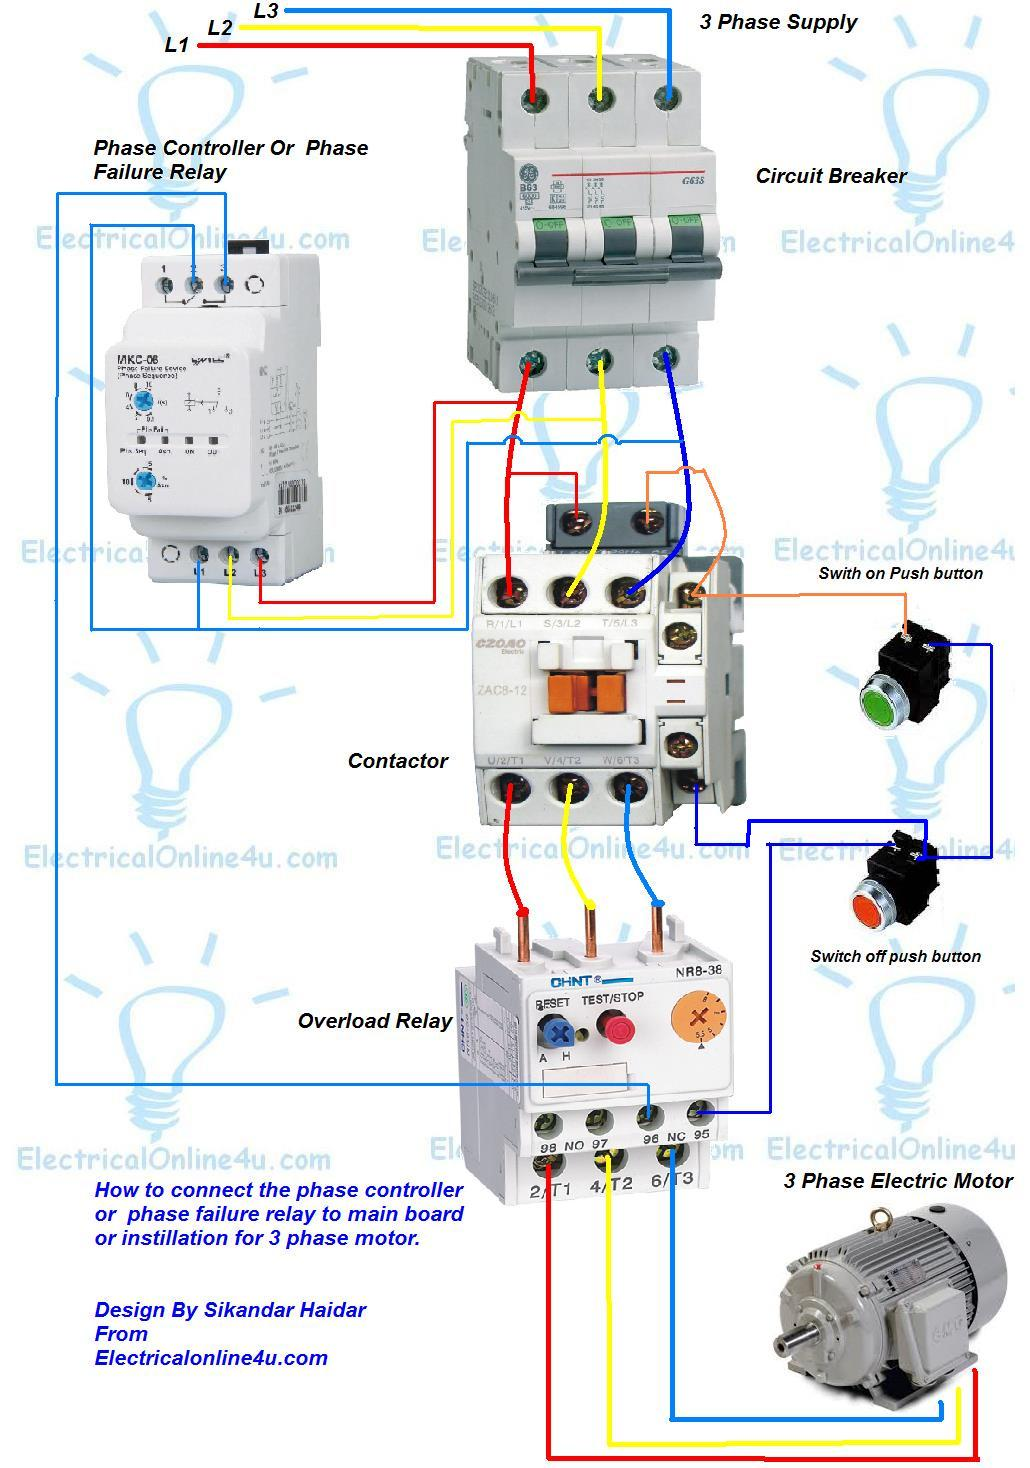 phase controller wiring   phase failure relay diagram electrical online 4u 3 phase motor contactor wiring diagram three phase motor control wiring diagrams